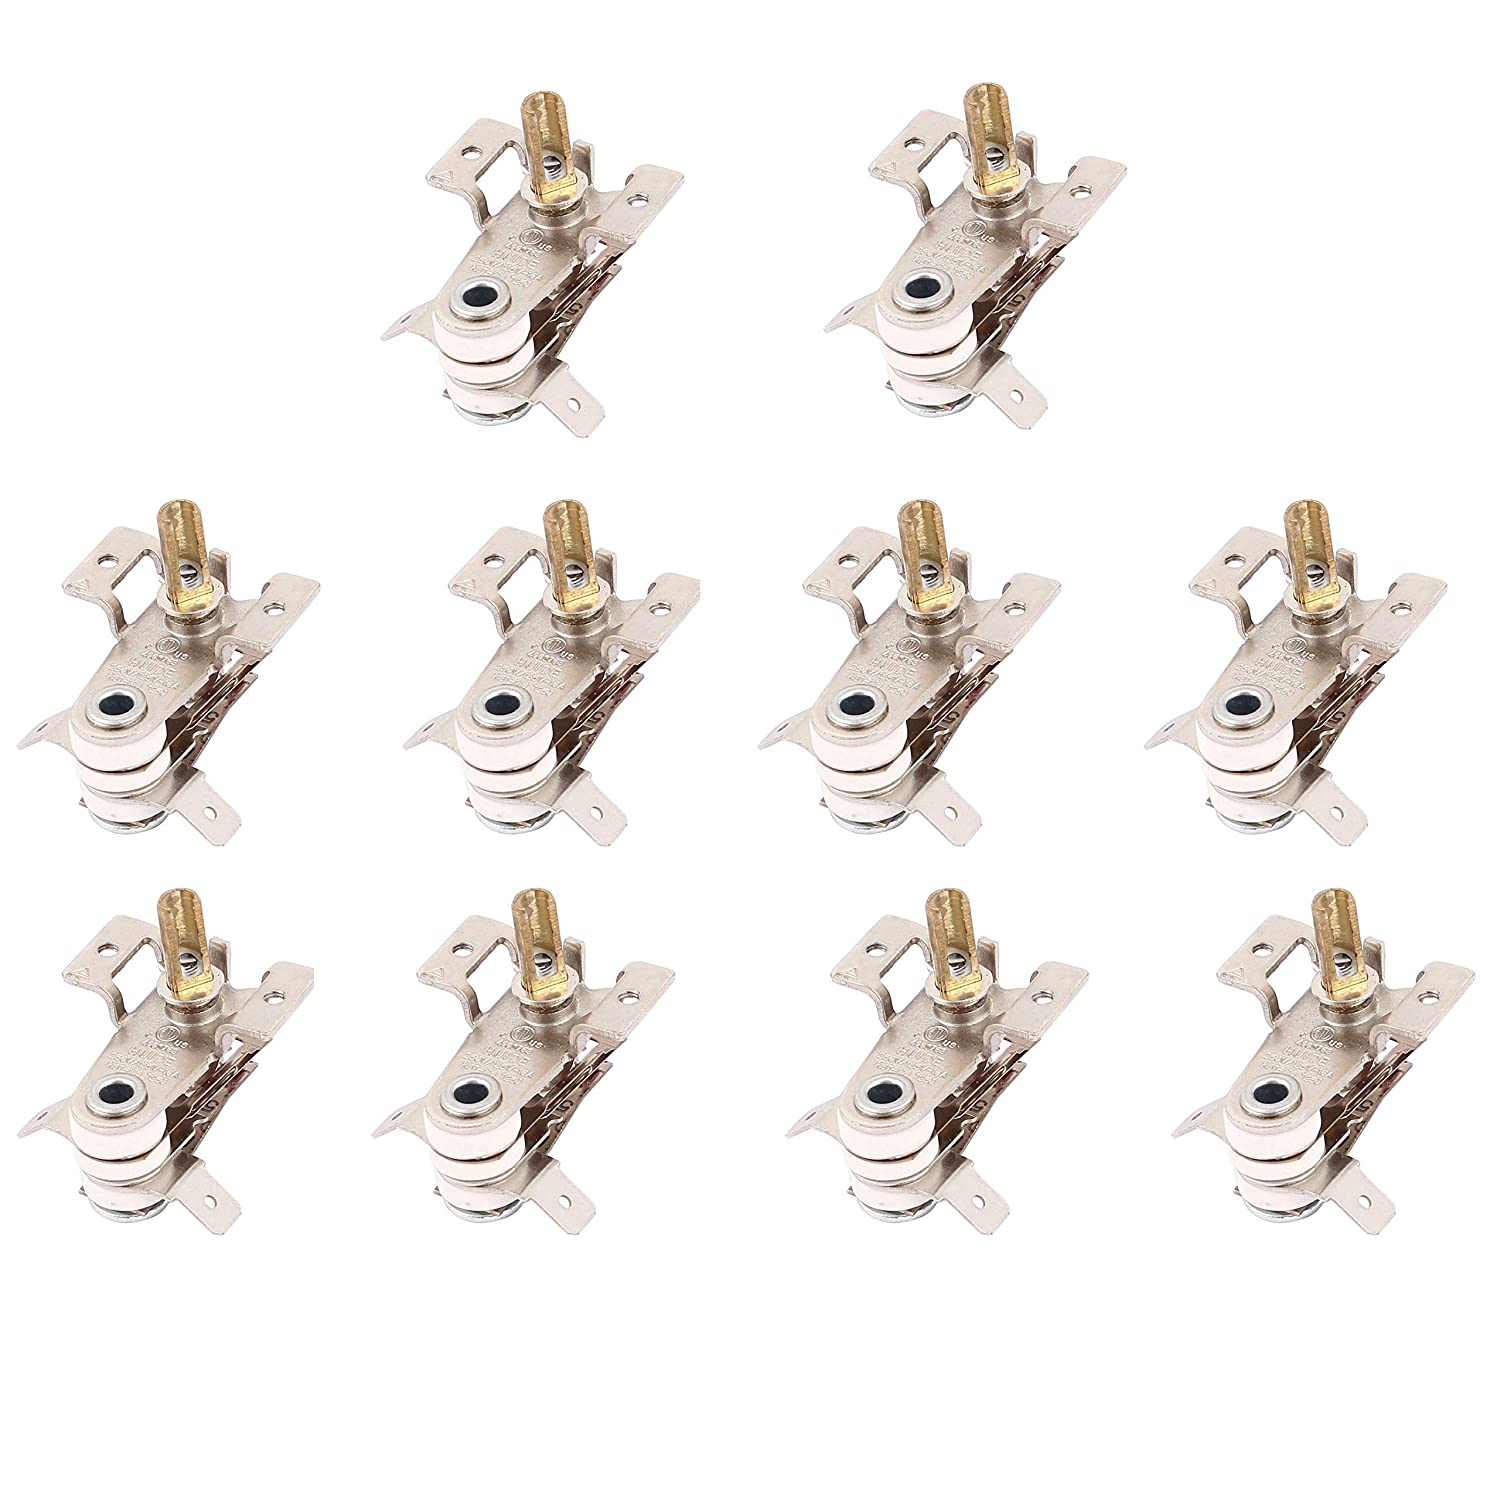 LDEXIN 10pcs AC 250V 16A Adjustable Bimetal Cooker Temperature Heating Thermostat Controller Switch Kitchen Electric Oven Replacing